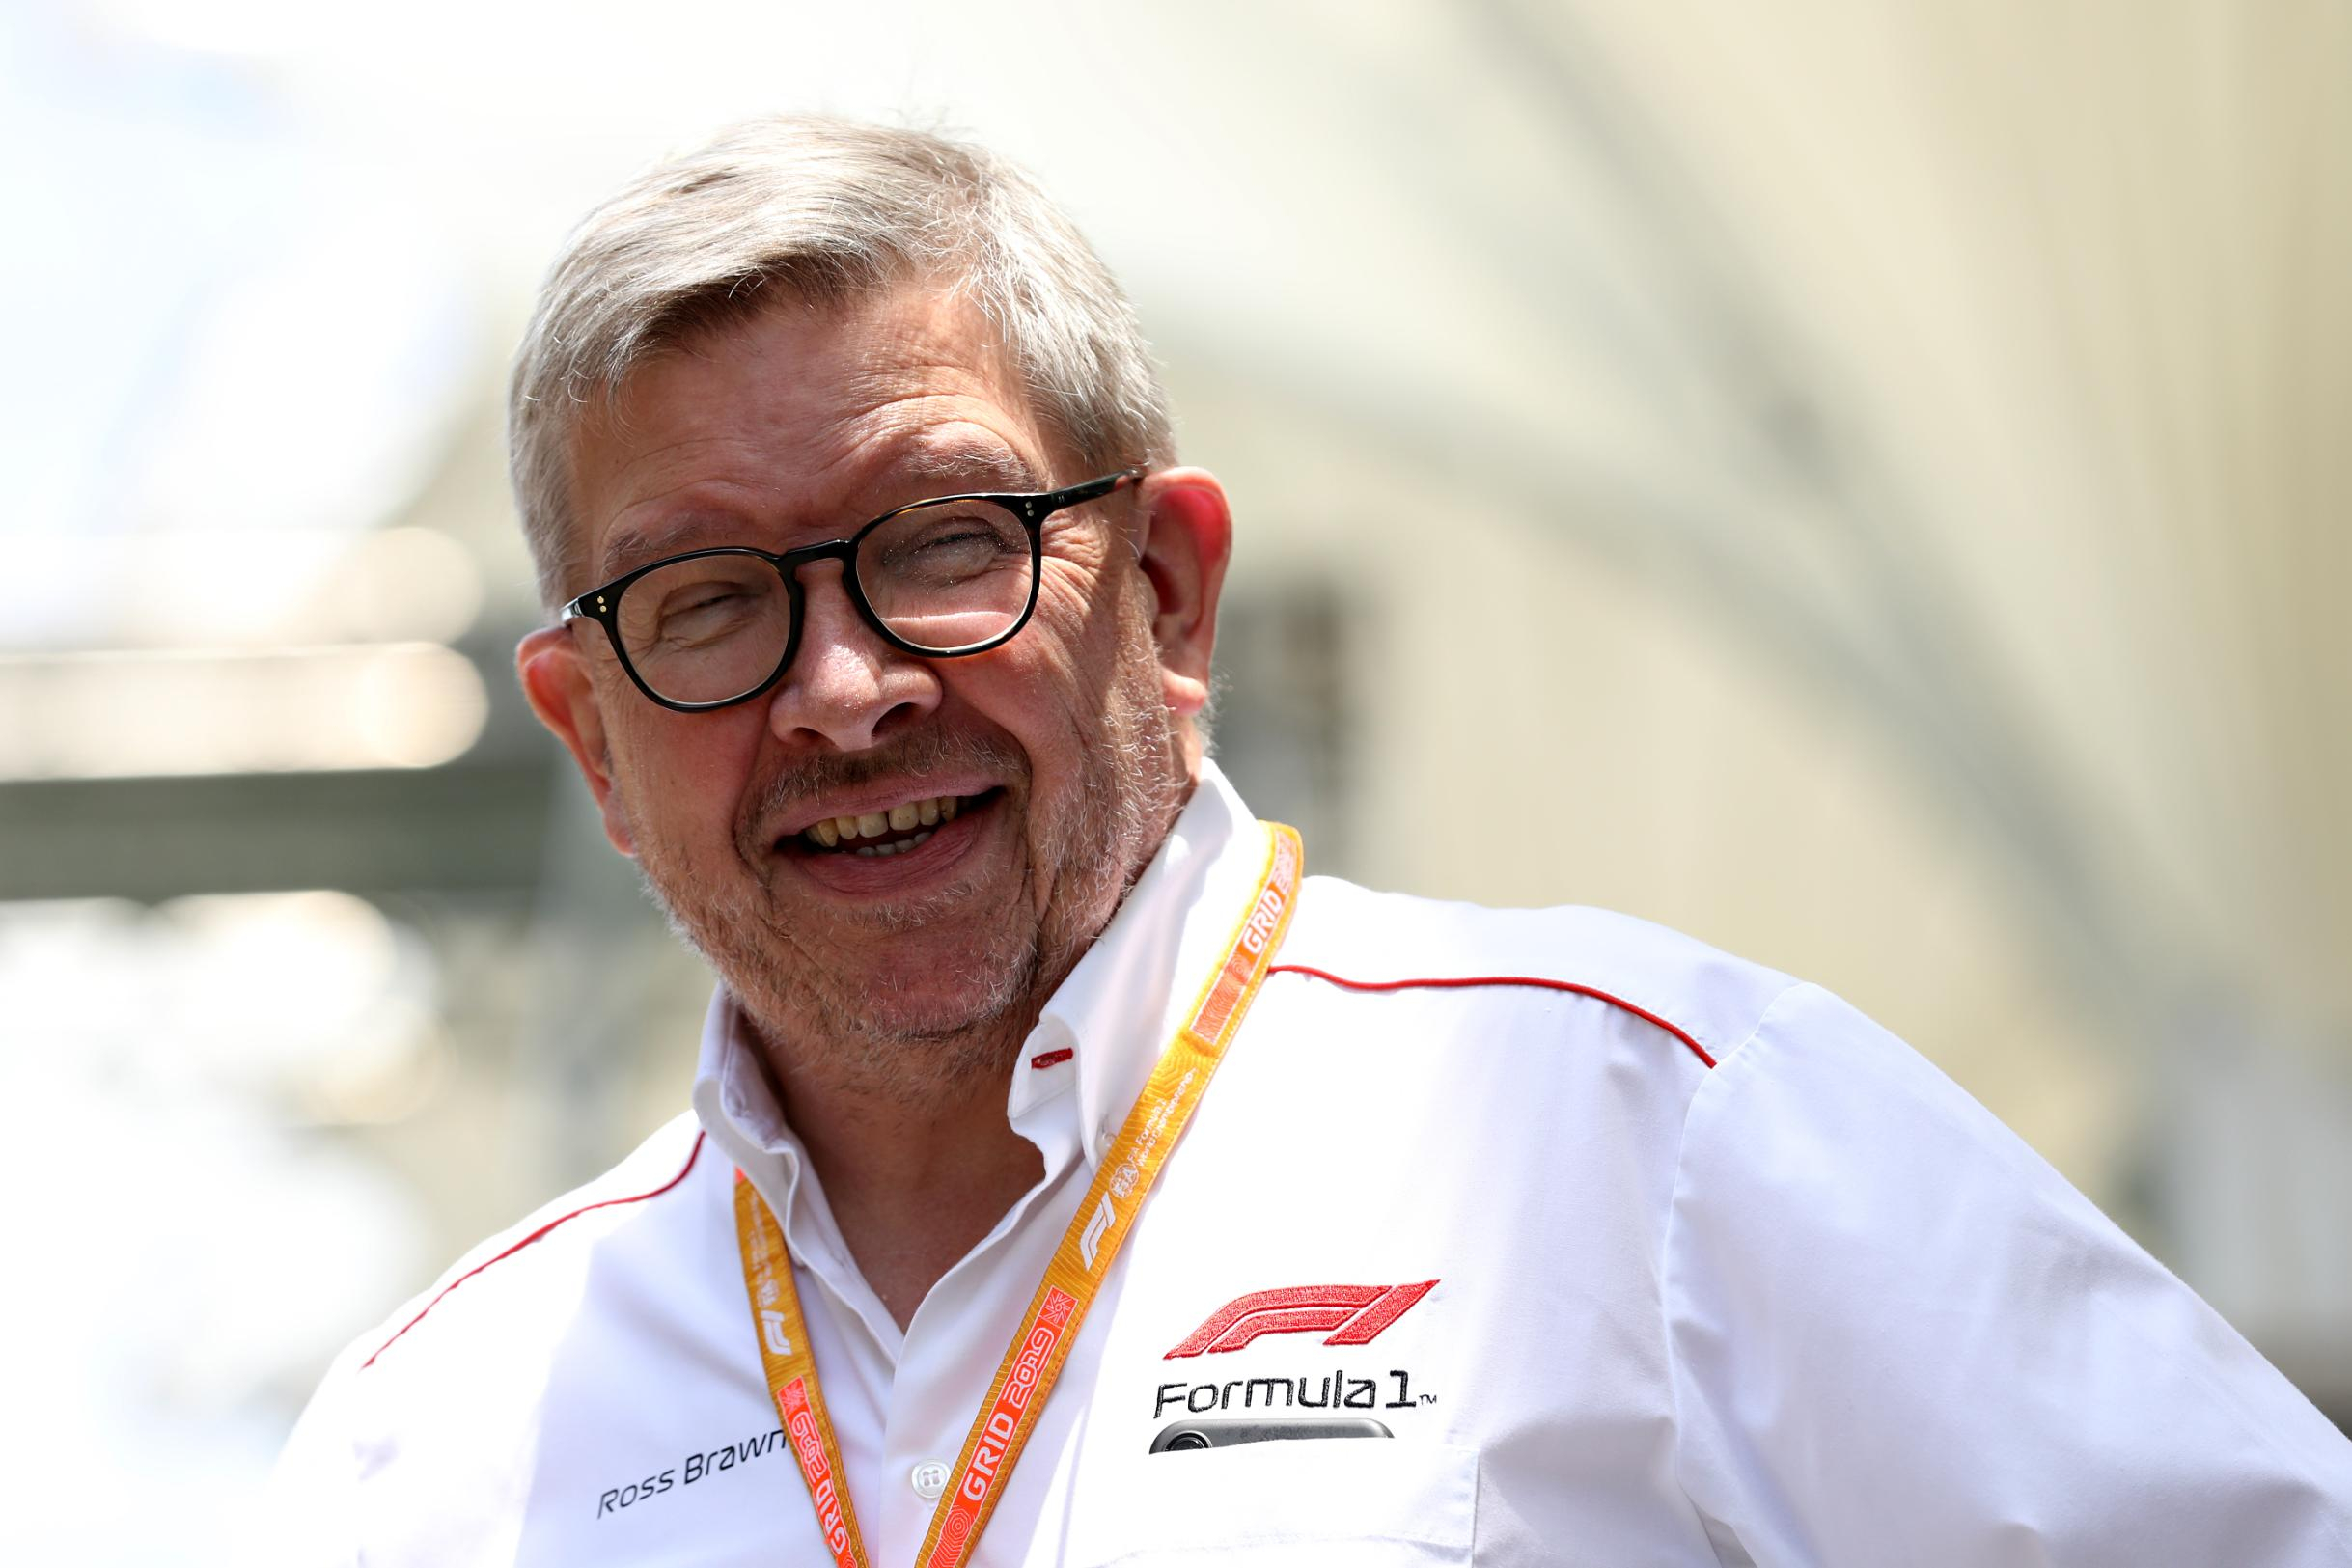 2020 F1 season could start behind closed doors, says managing director Ross Brawn